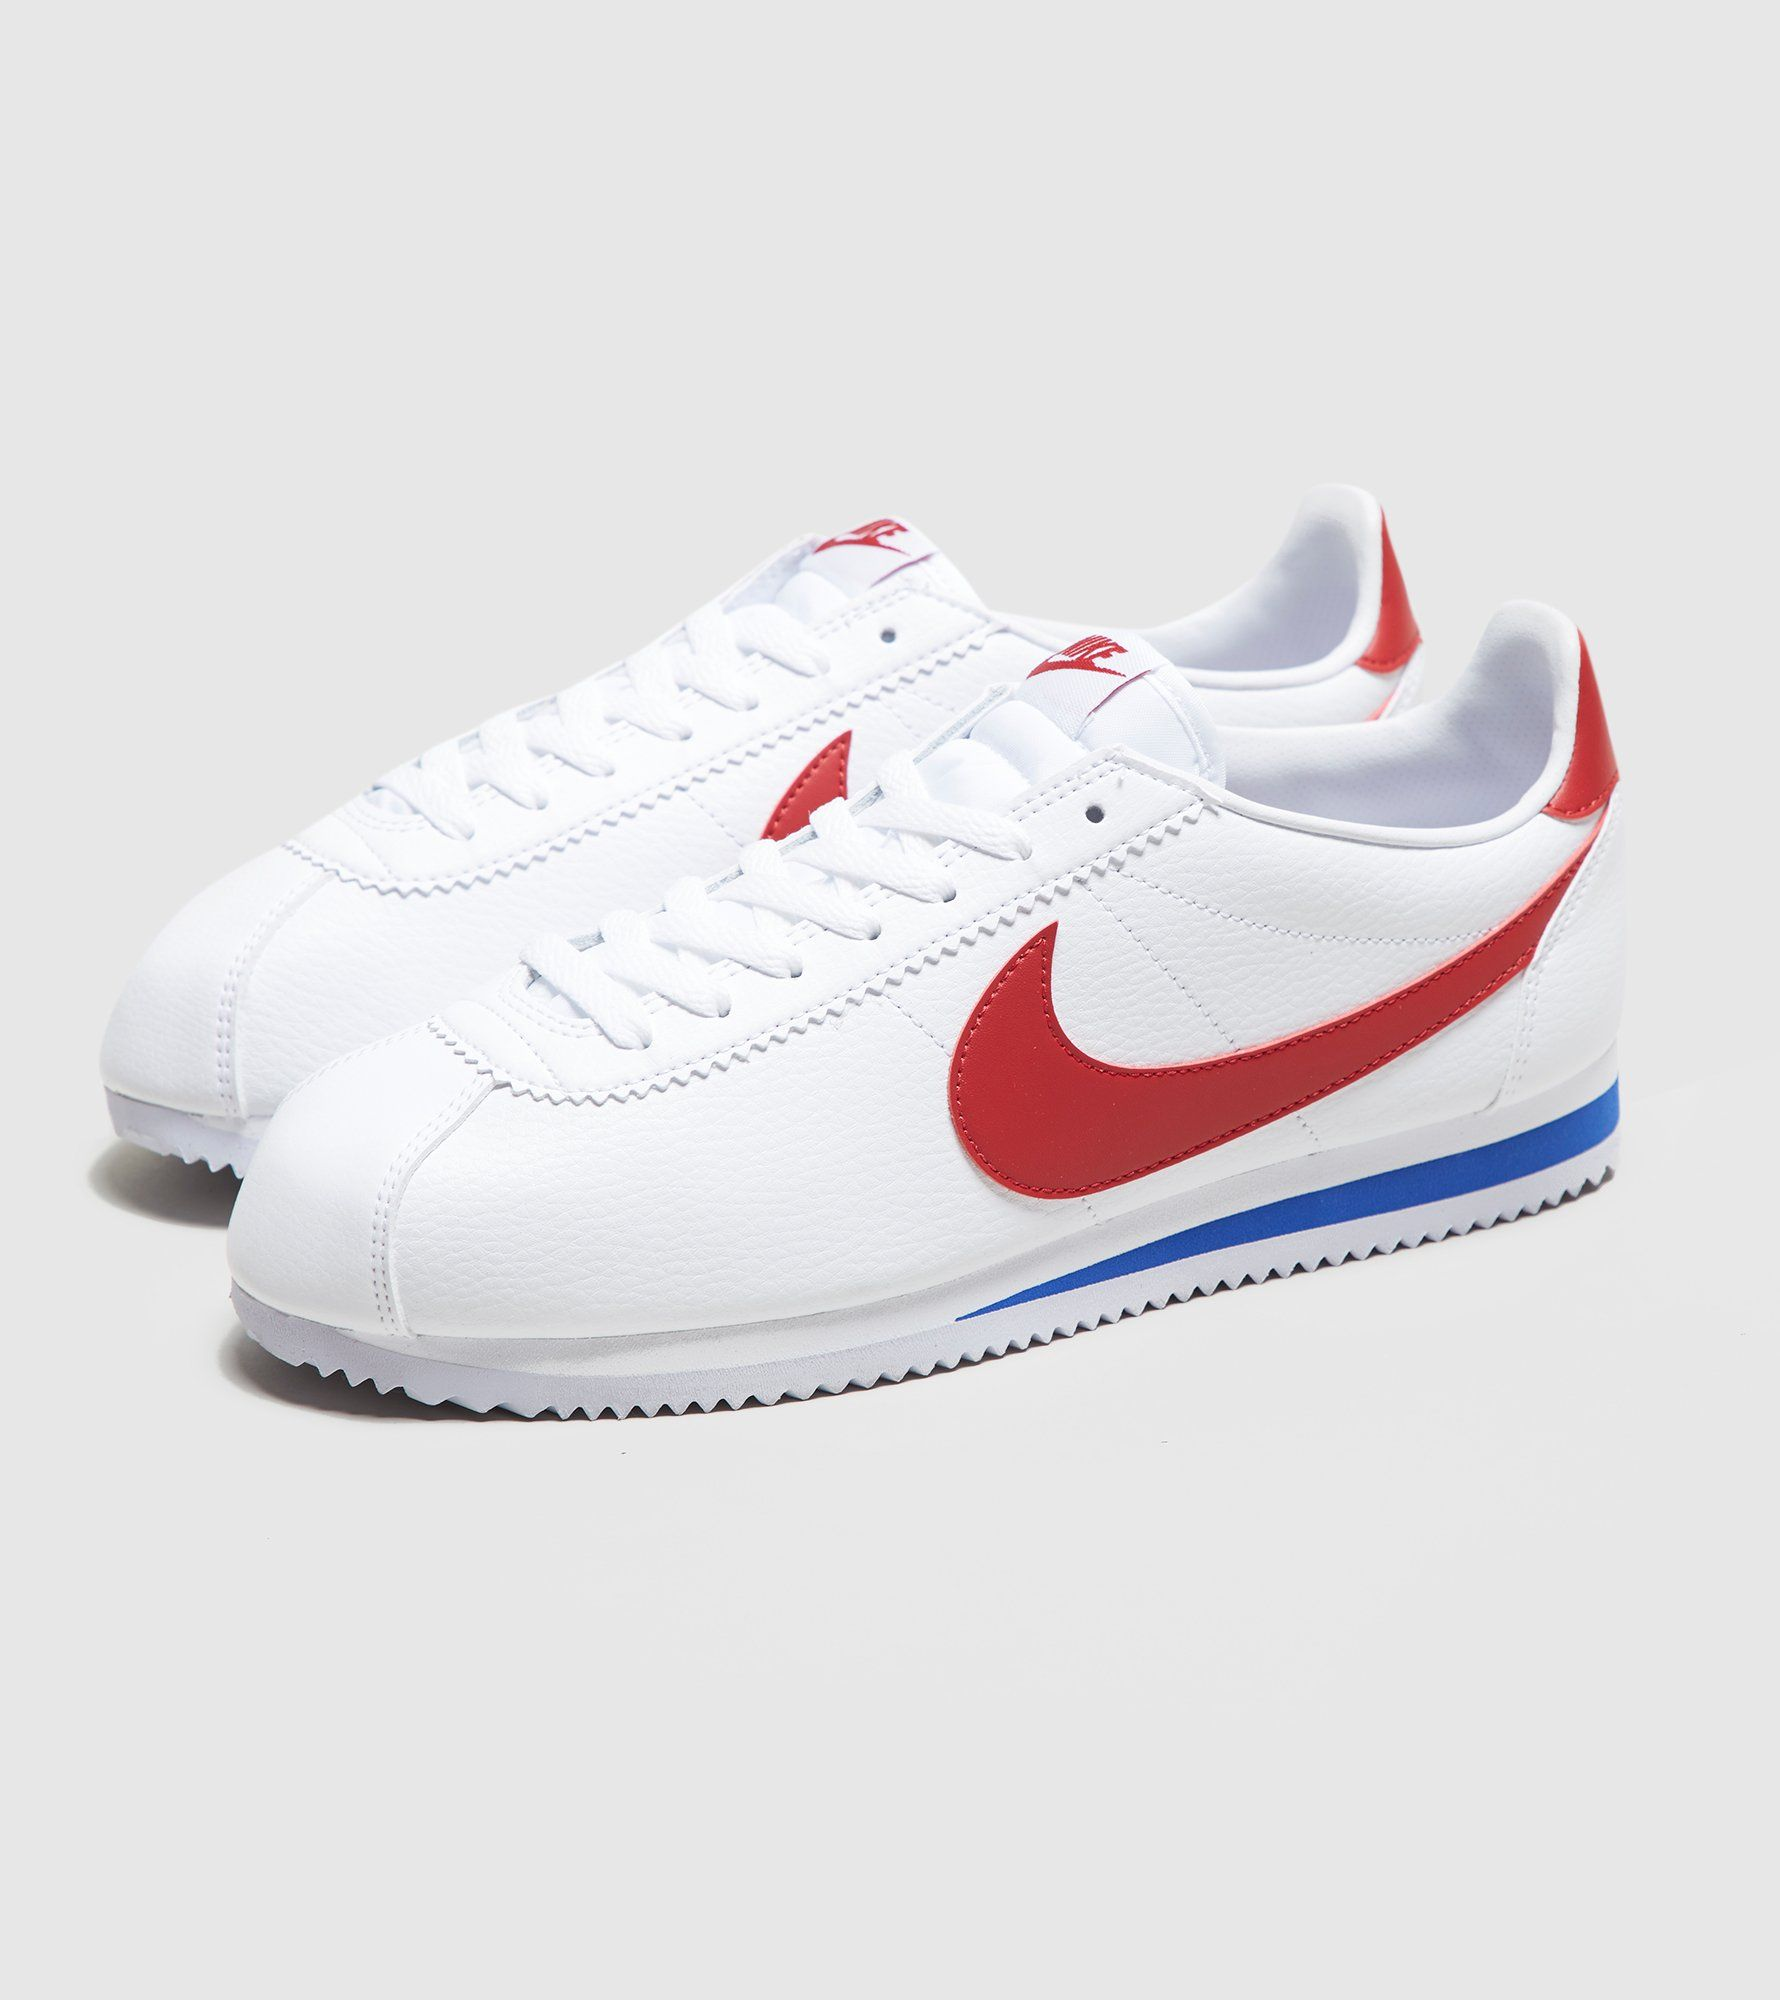 Nike Classic Cortez Leather